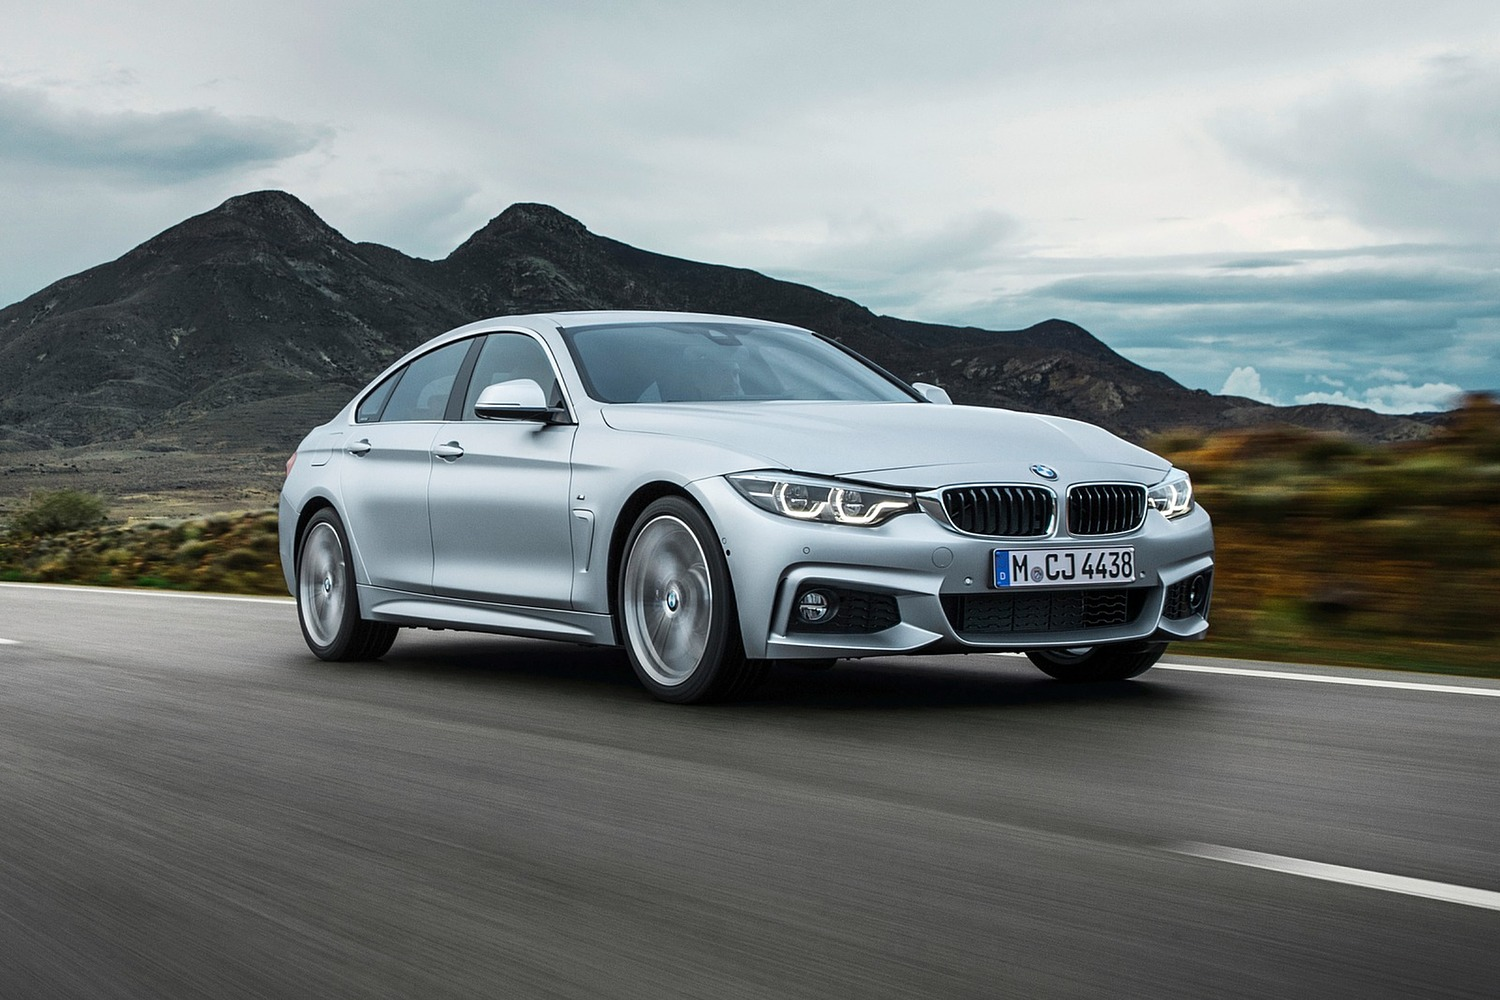 2018 BMW 4 Series Gran Coupe 440i Sedan Exterior M Sport Package Shown